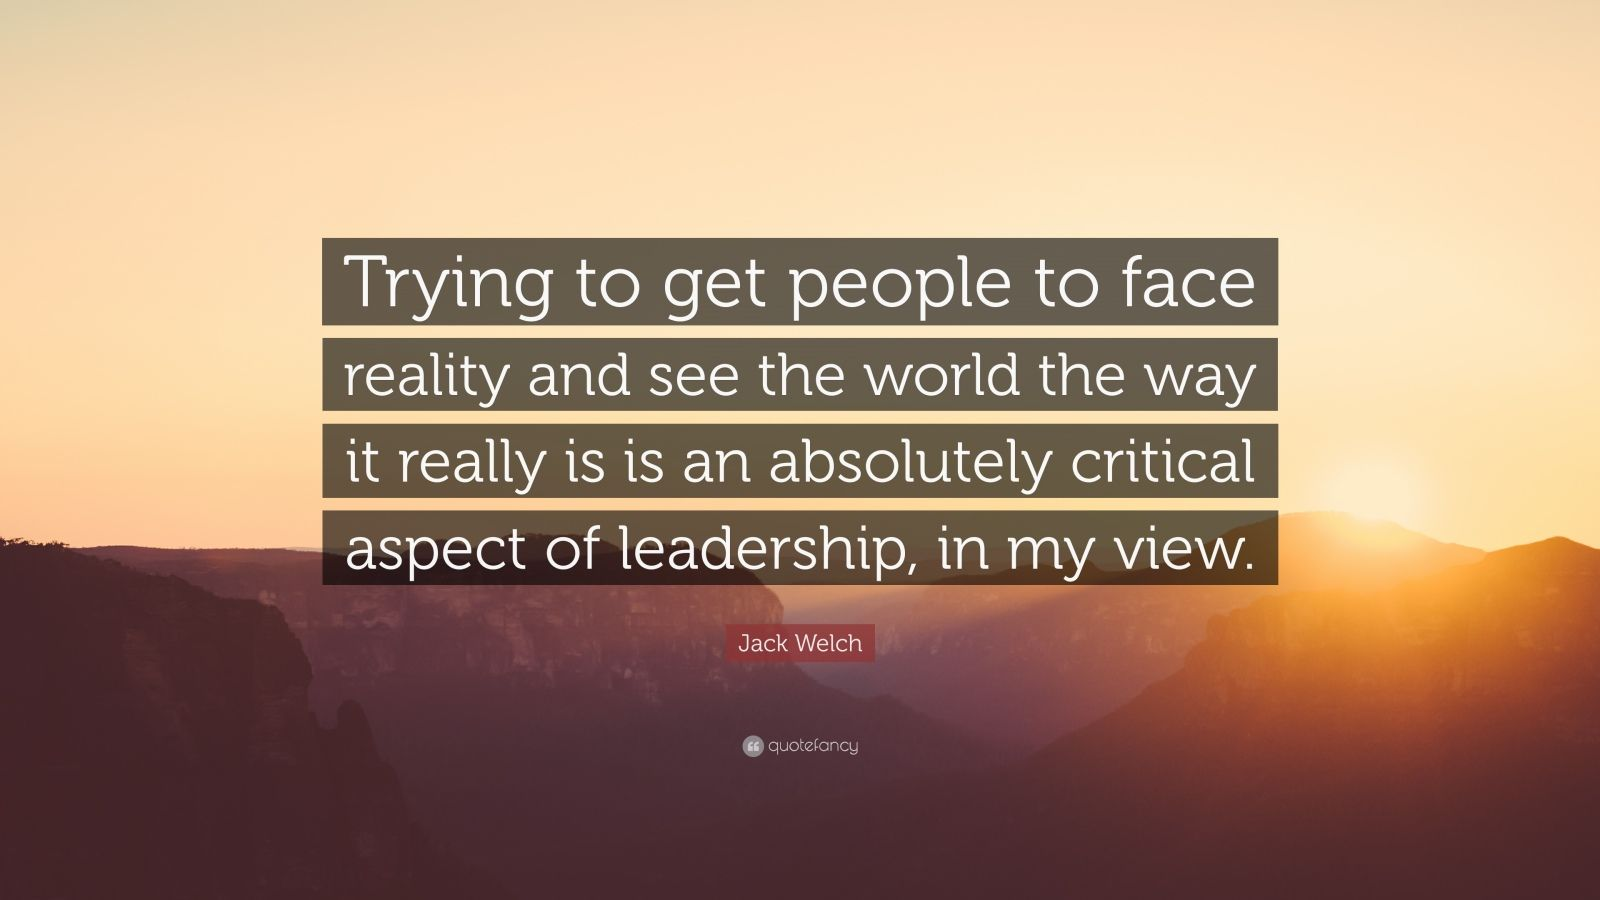 """Jack Welch Quote: """"Trying to get people to face reality and see the world the way it really is is an absolutely critical aspect of leadership, in my view."""""""